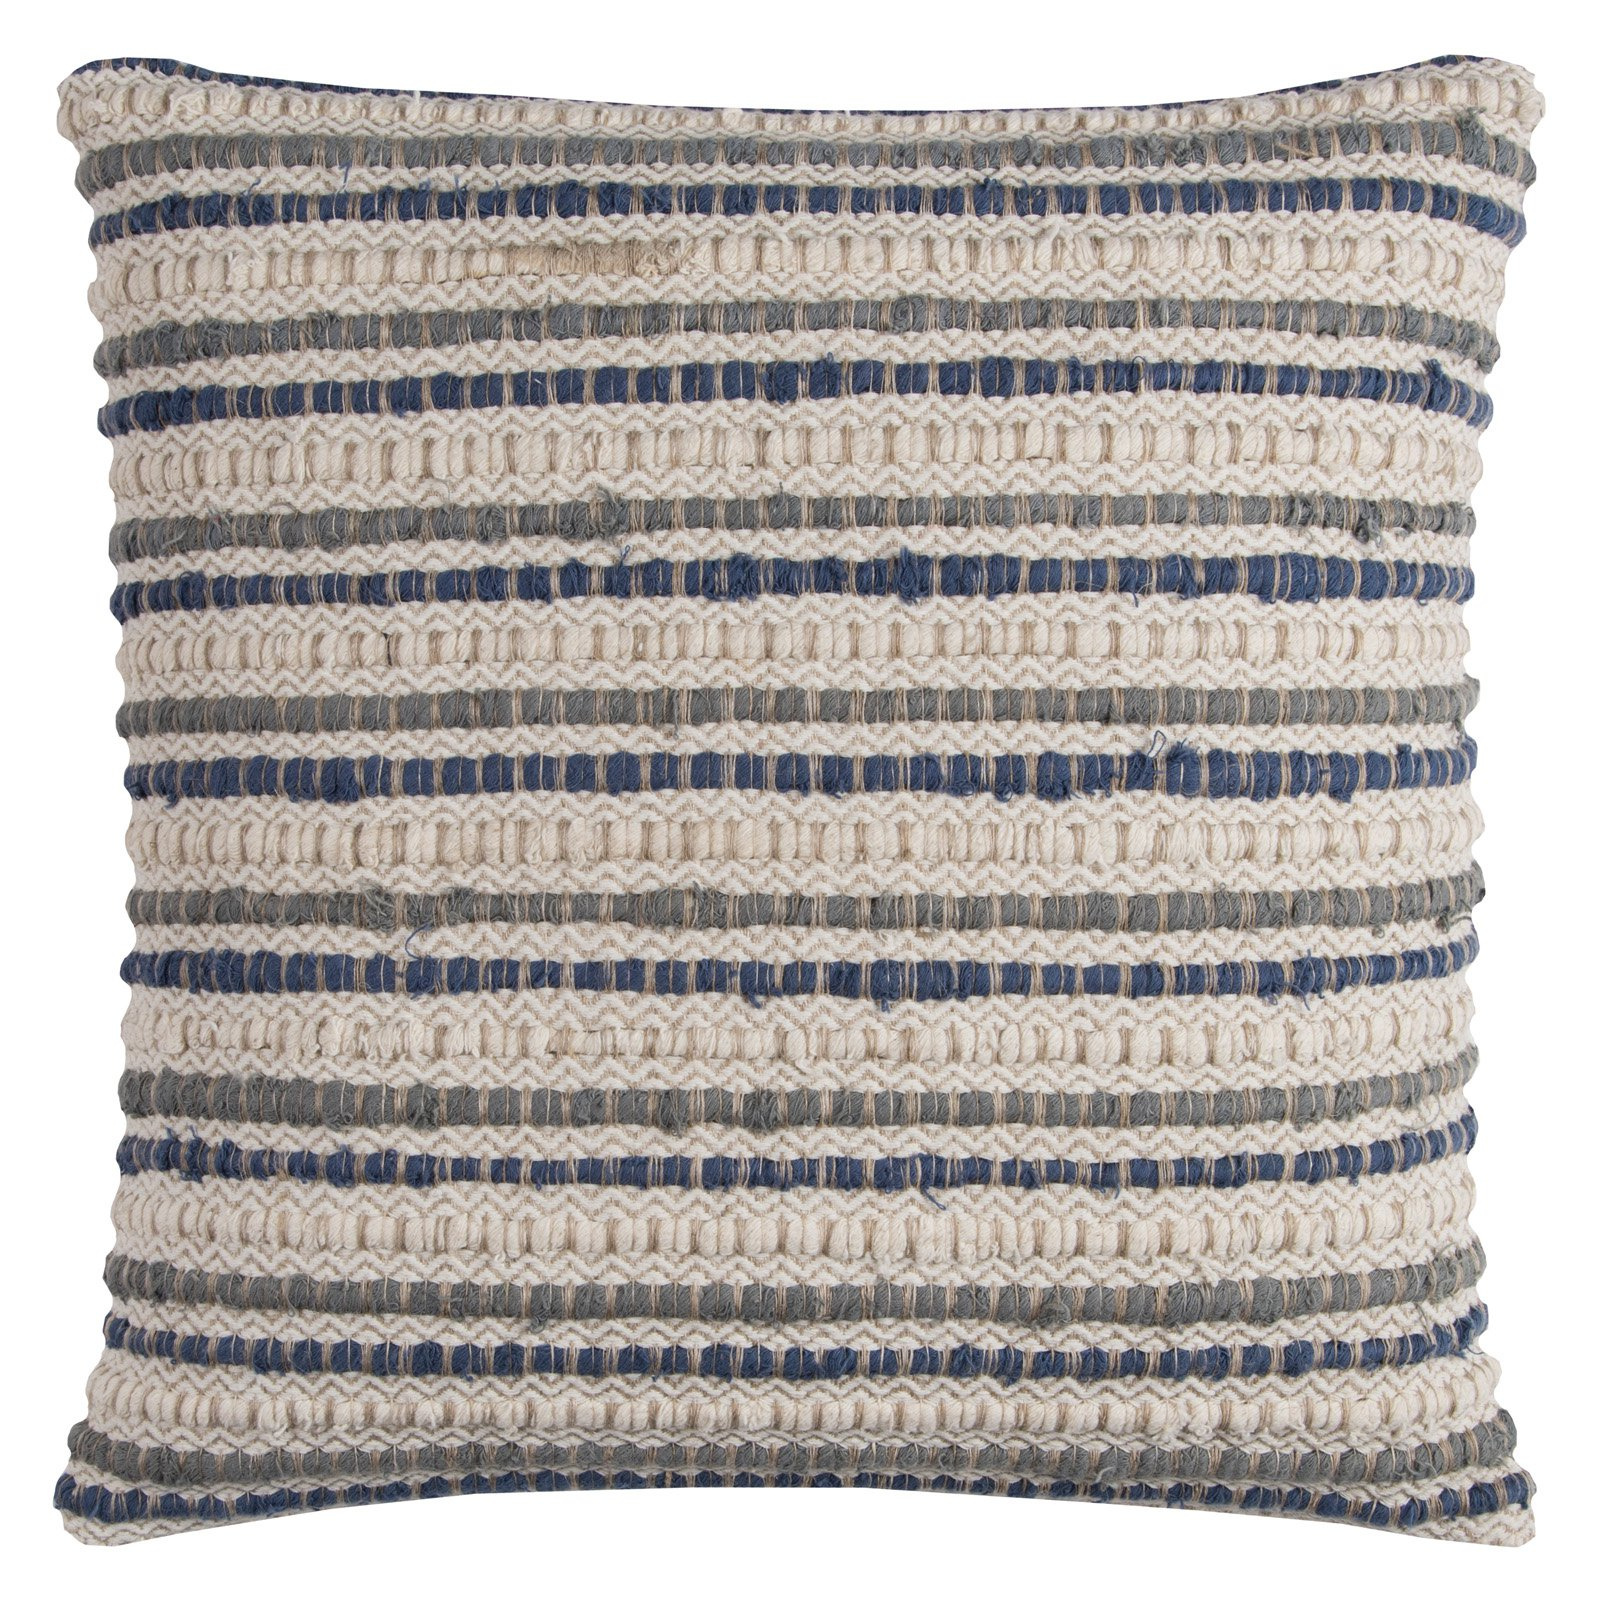 "Rizzy Home Striped Textured Decorative Throw Pillow With Zipper Closer, 20"" x 20"", Blue"